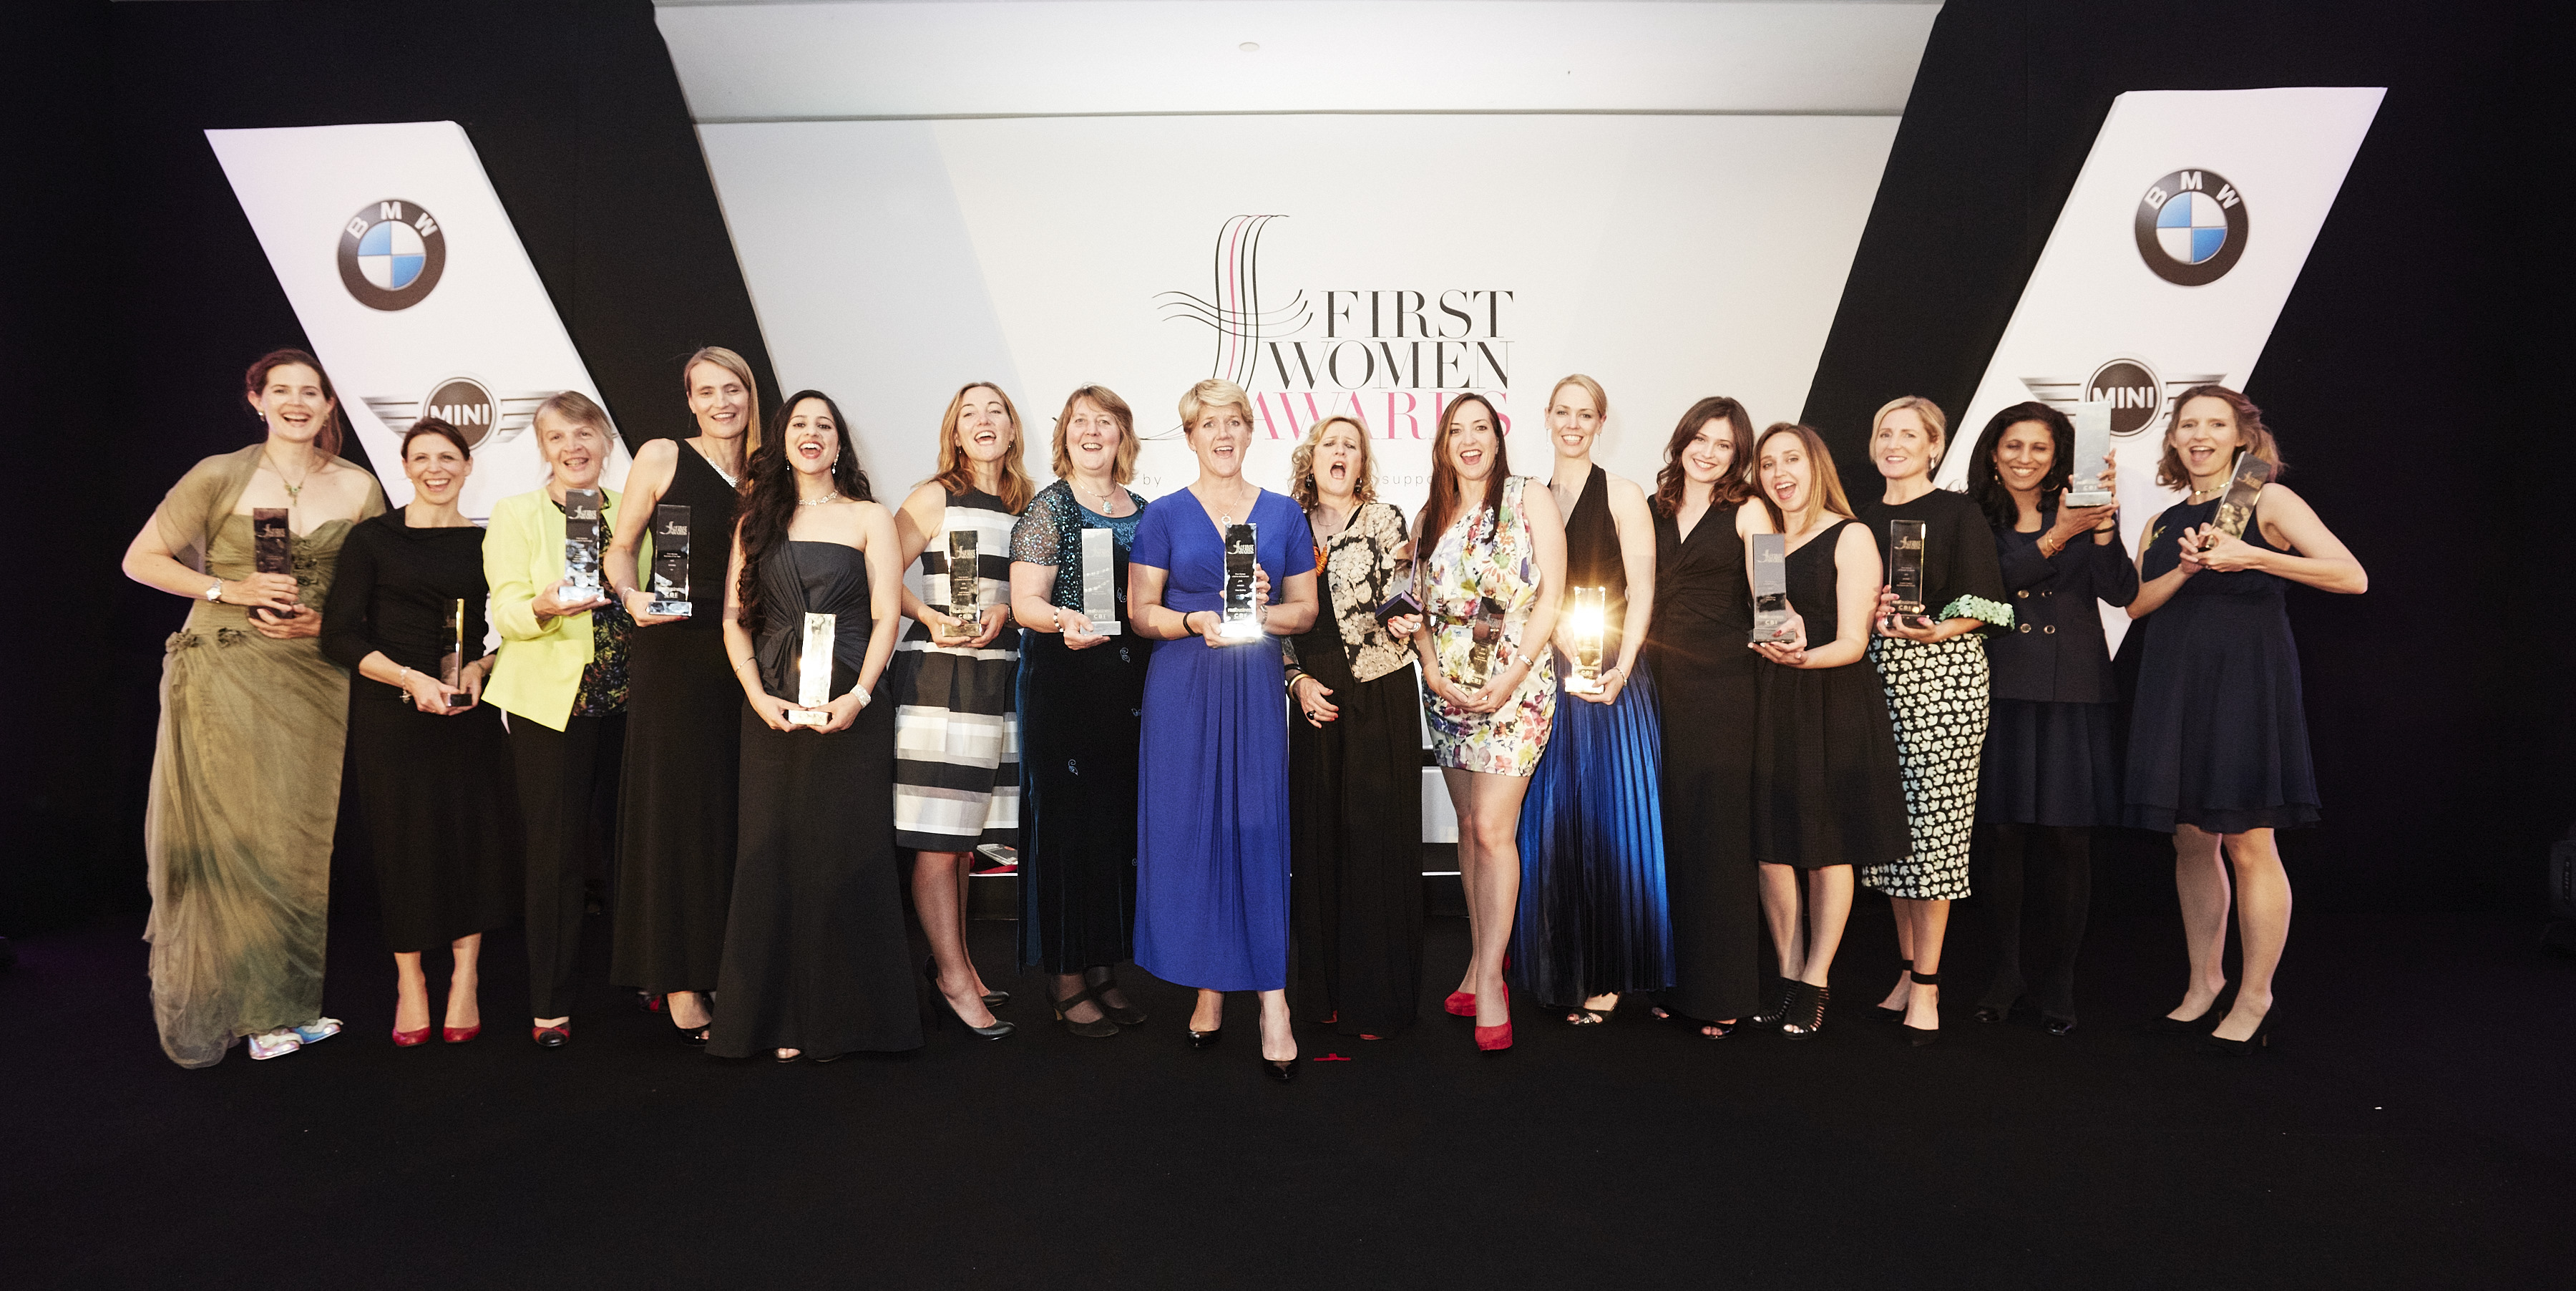 First Women Awards 2016: This could be your year